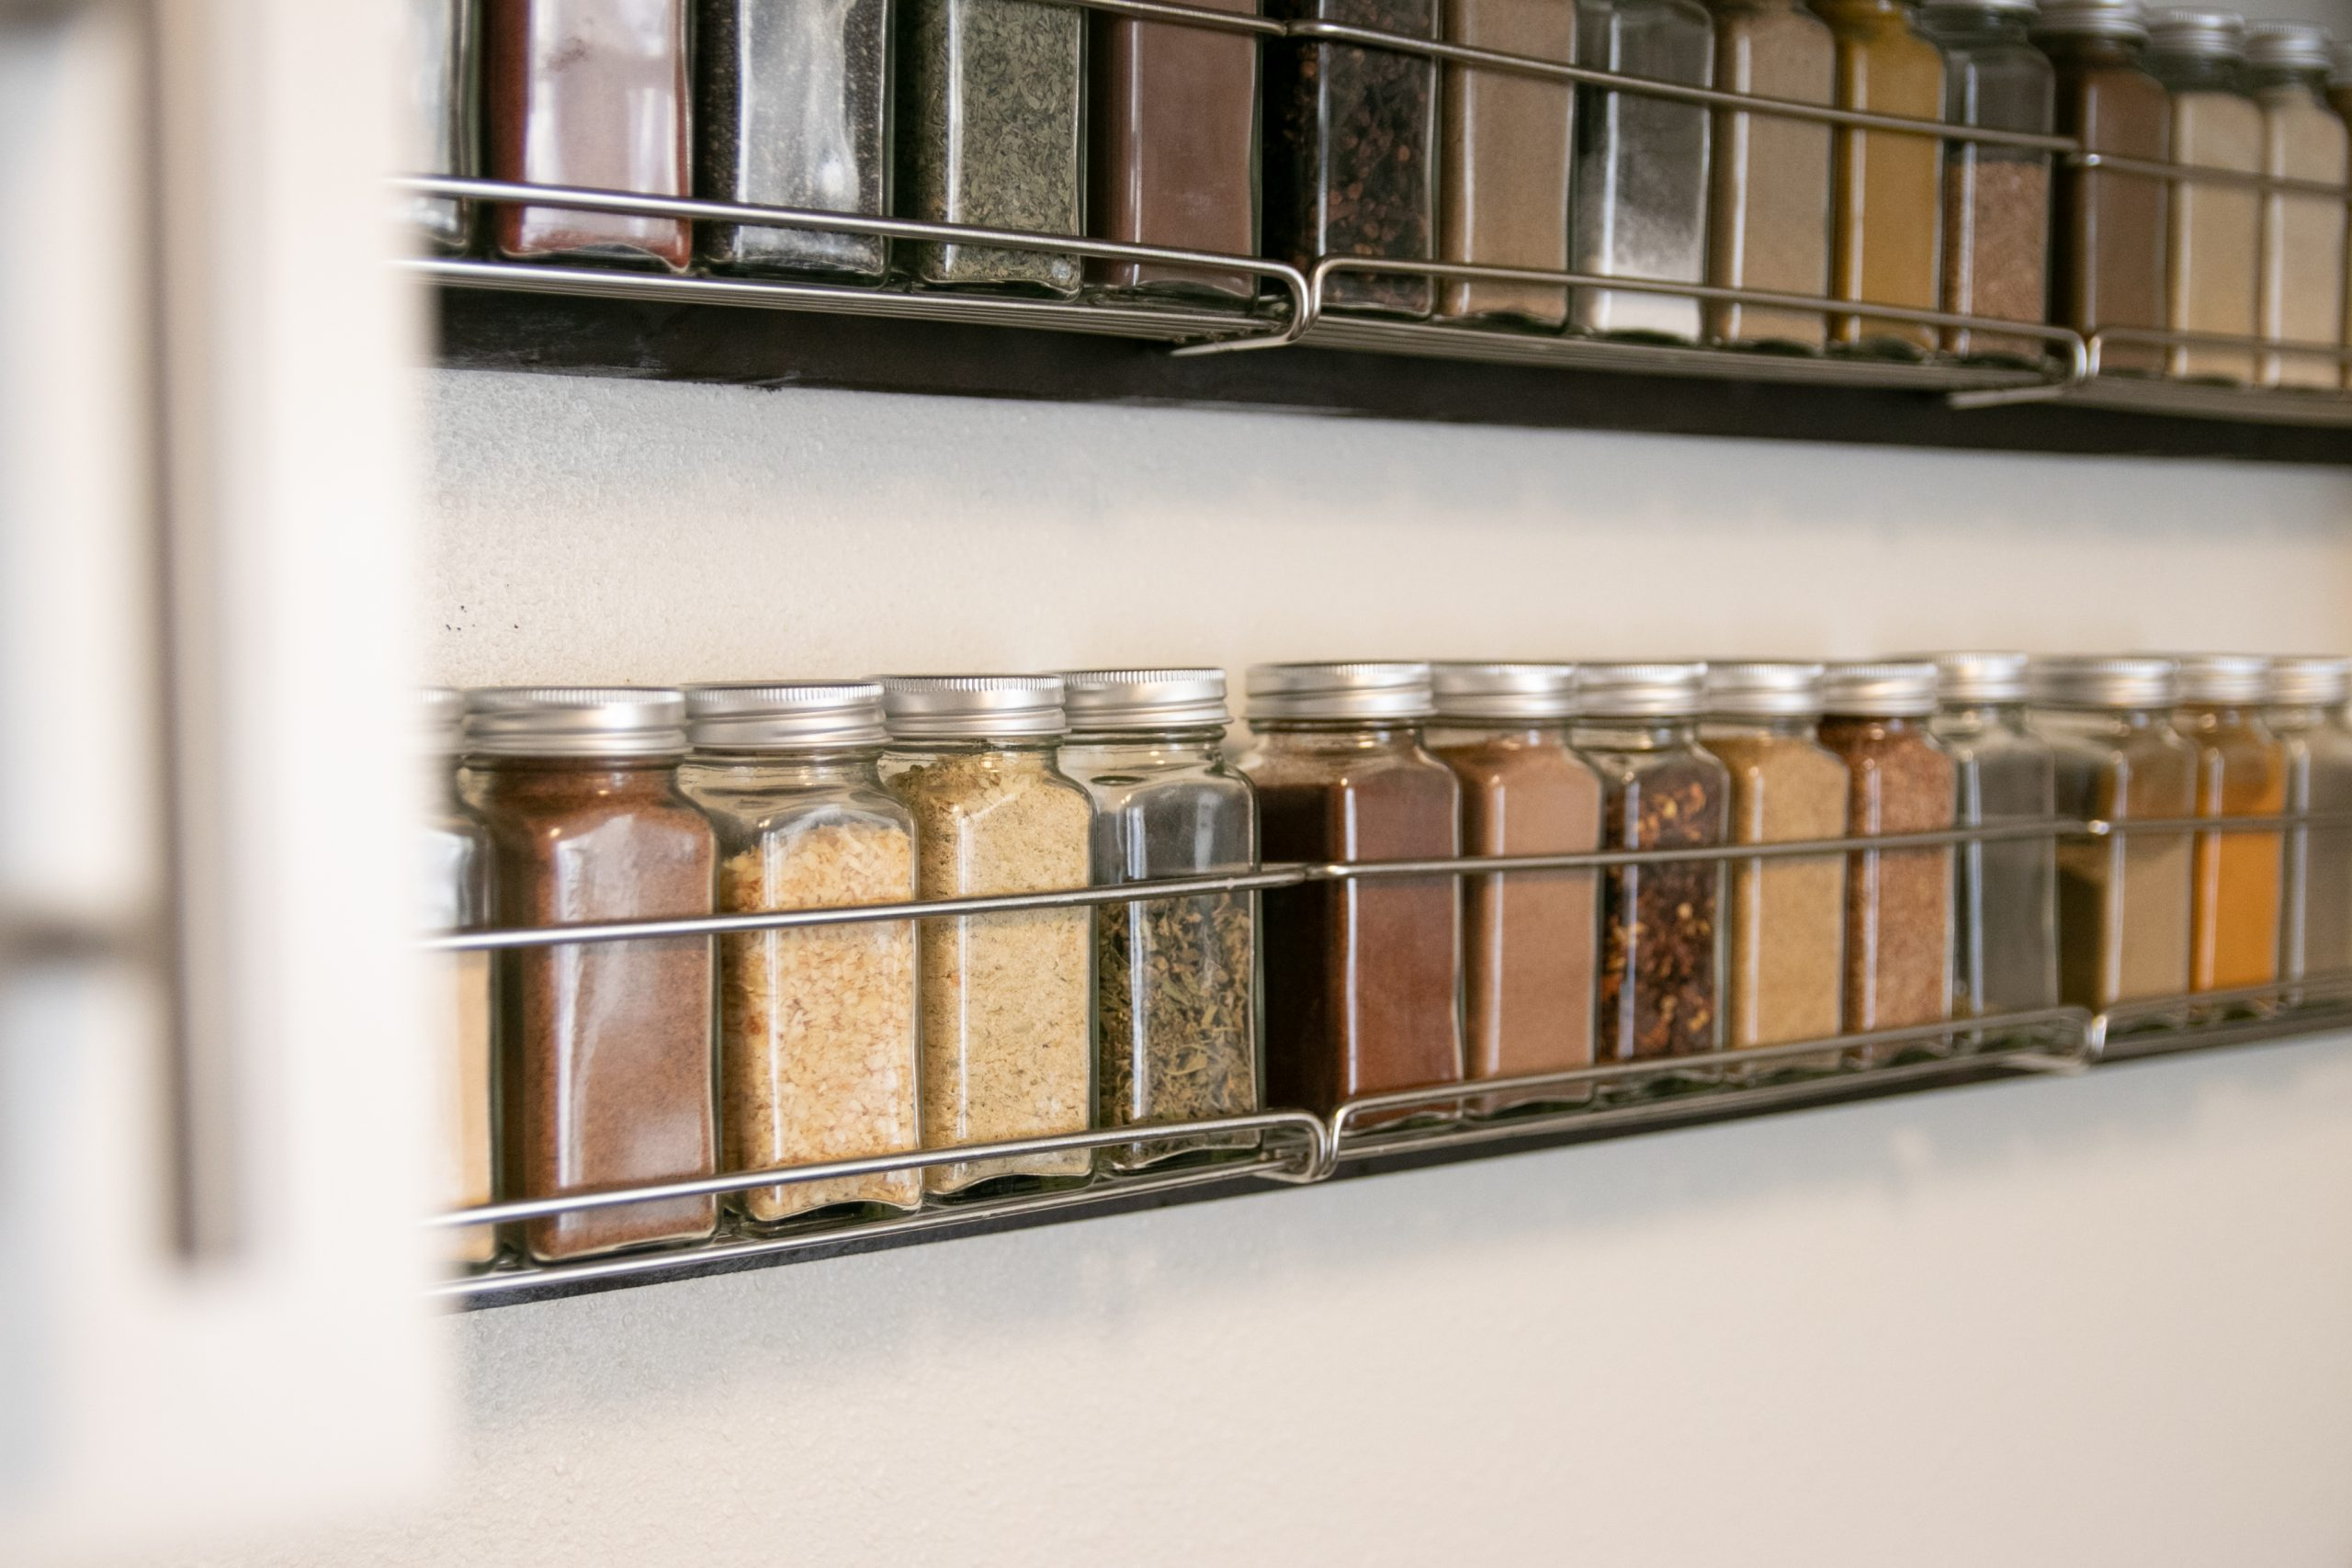 Filled Jars In Wall Mounted Spice Rack